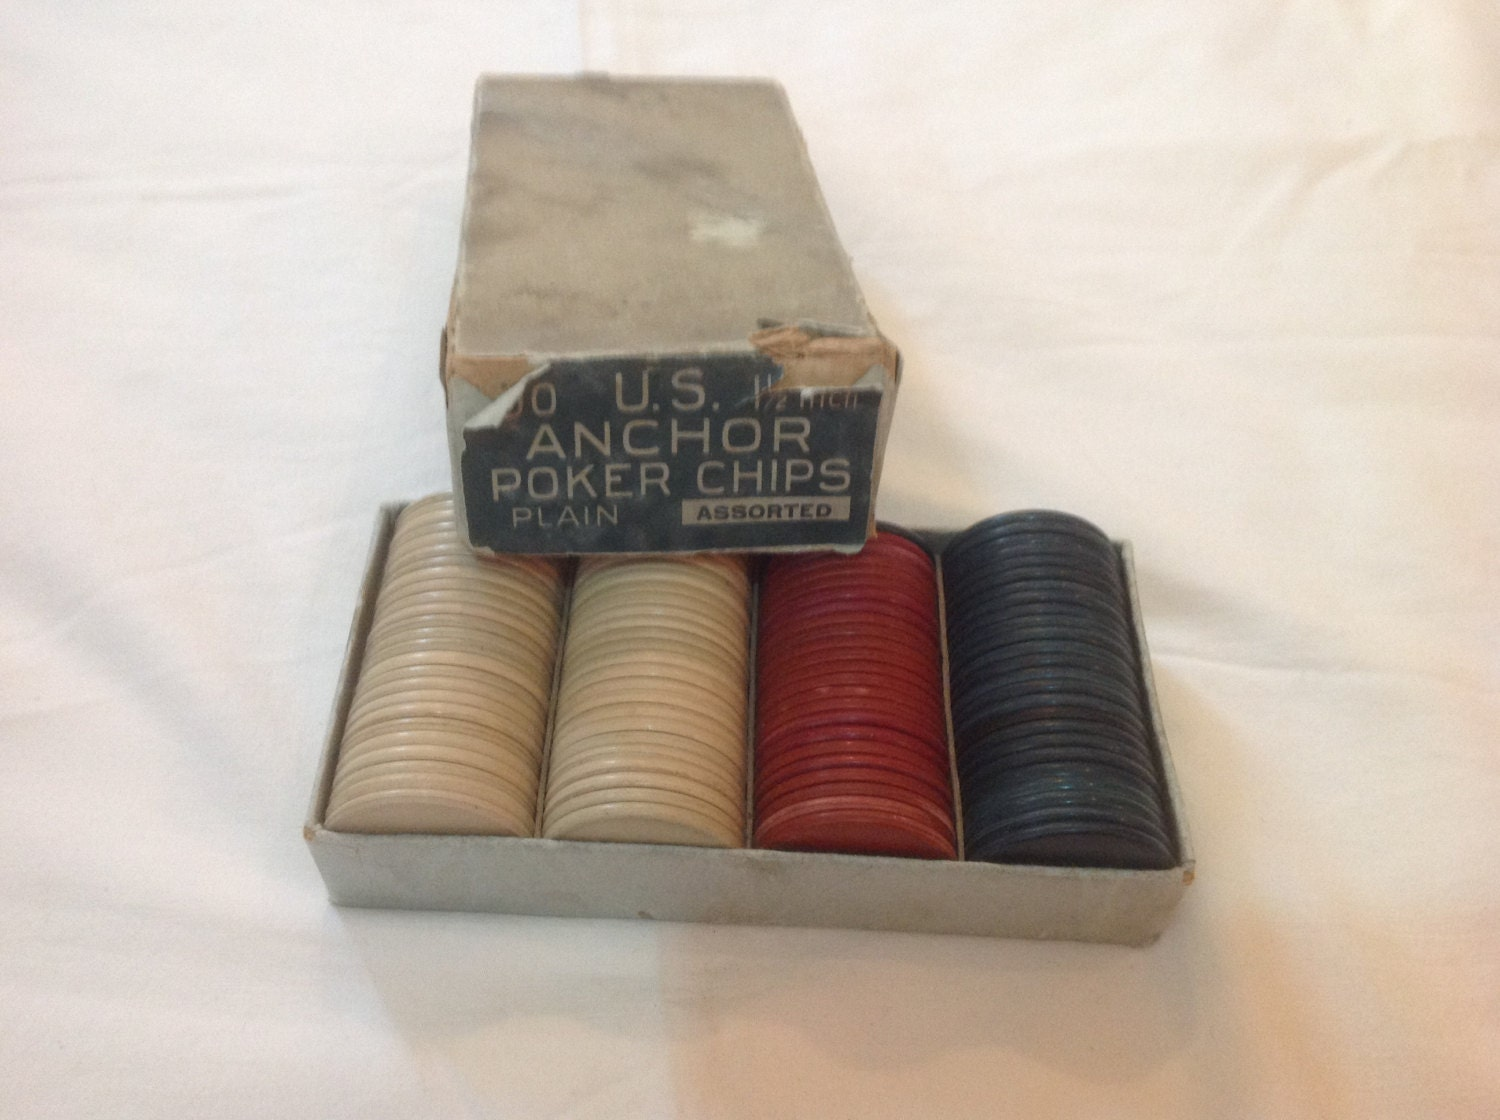 Oil clay poker chips